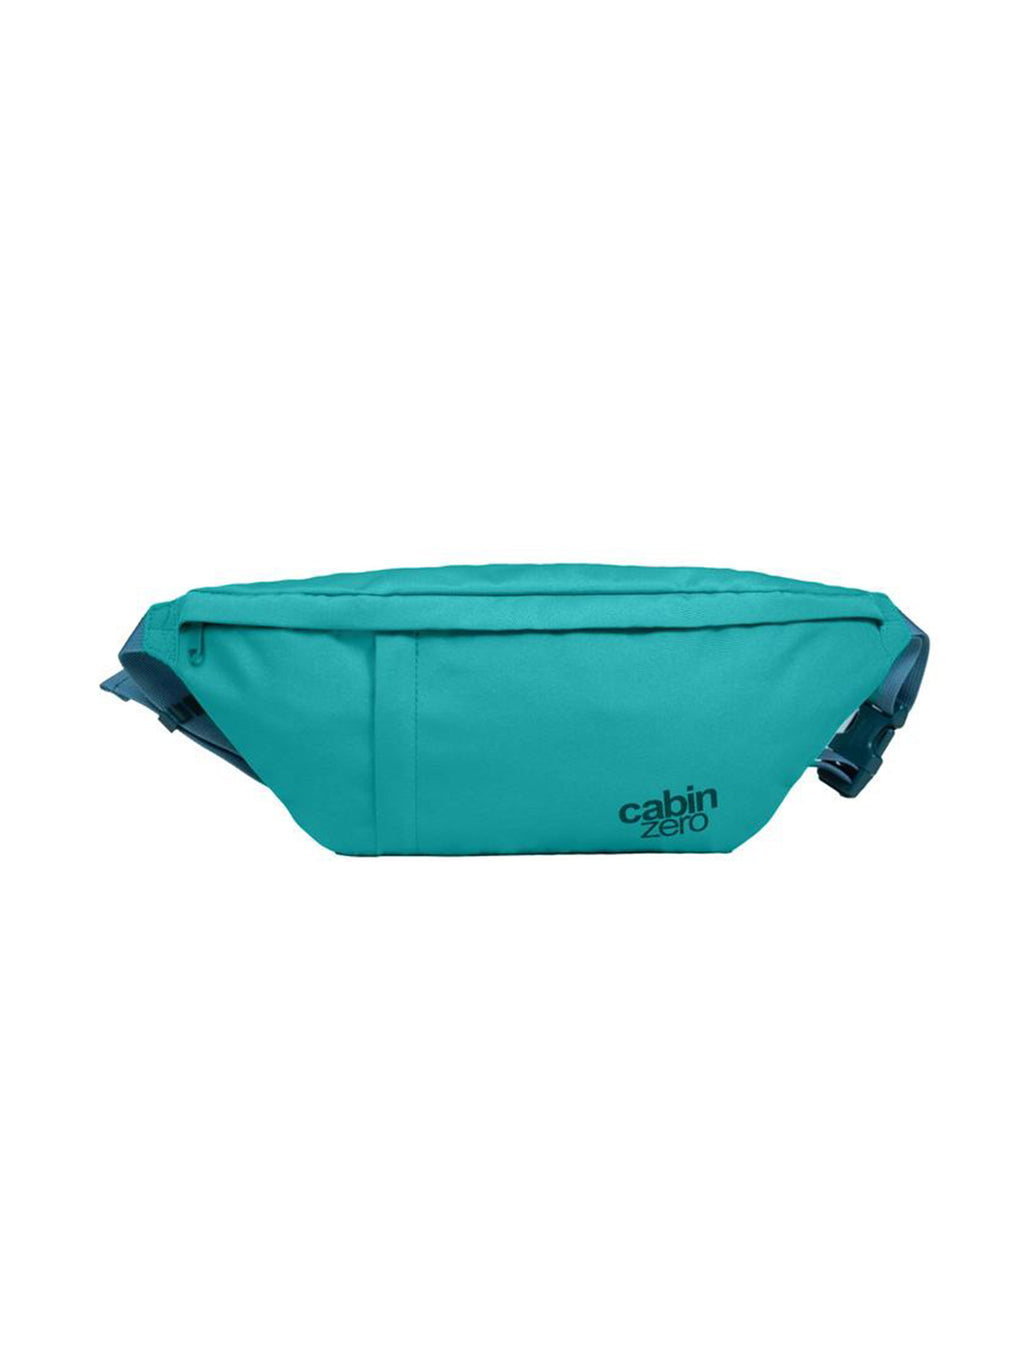 Cabinzero Hip Pack 2L in Boracay Blue Color - This Is For Him